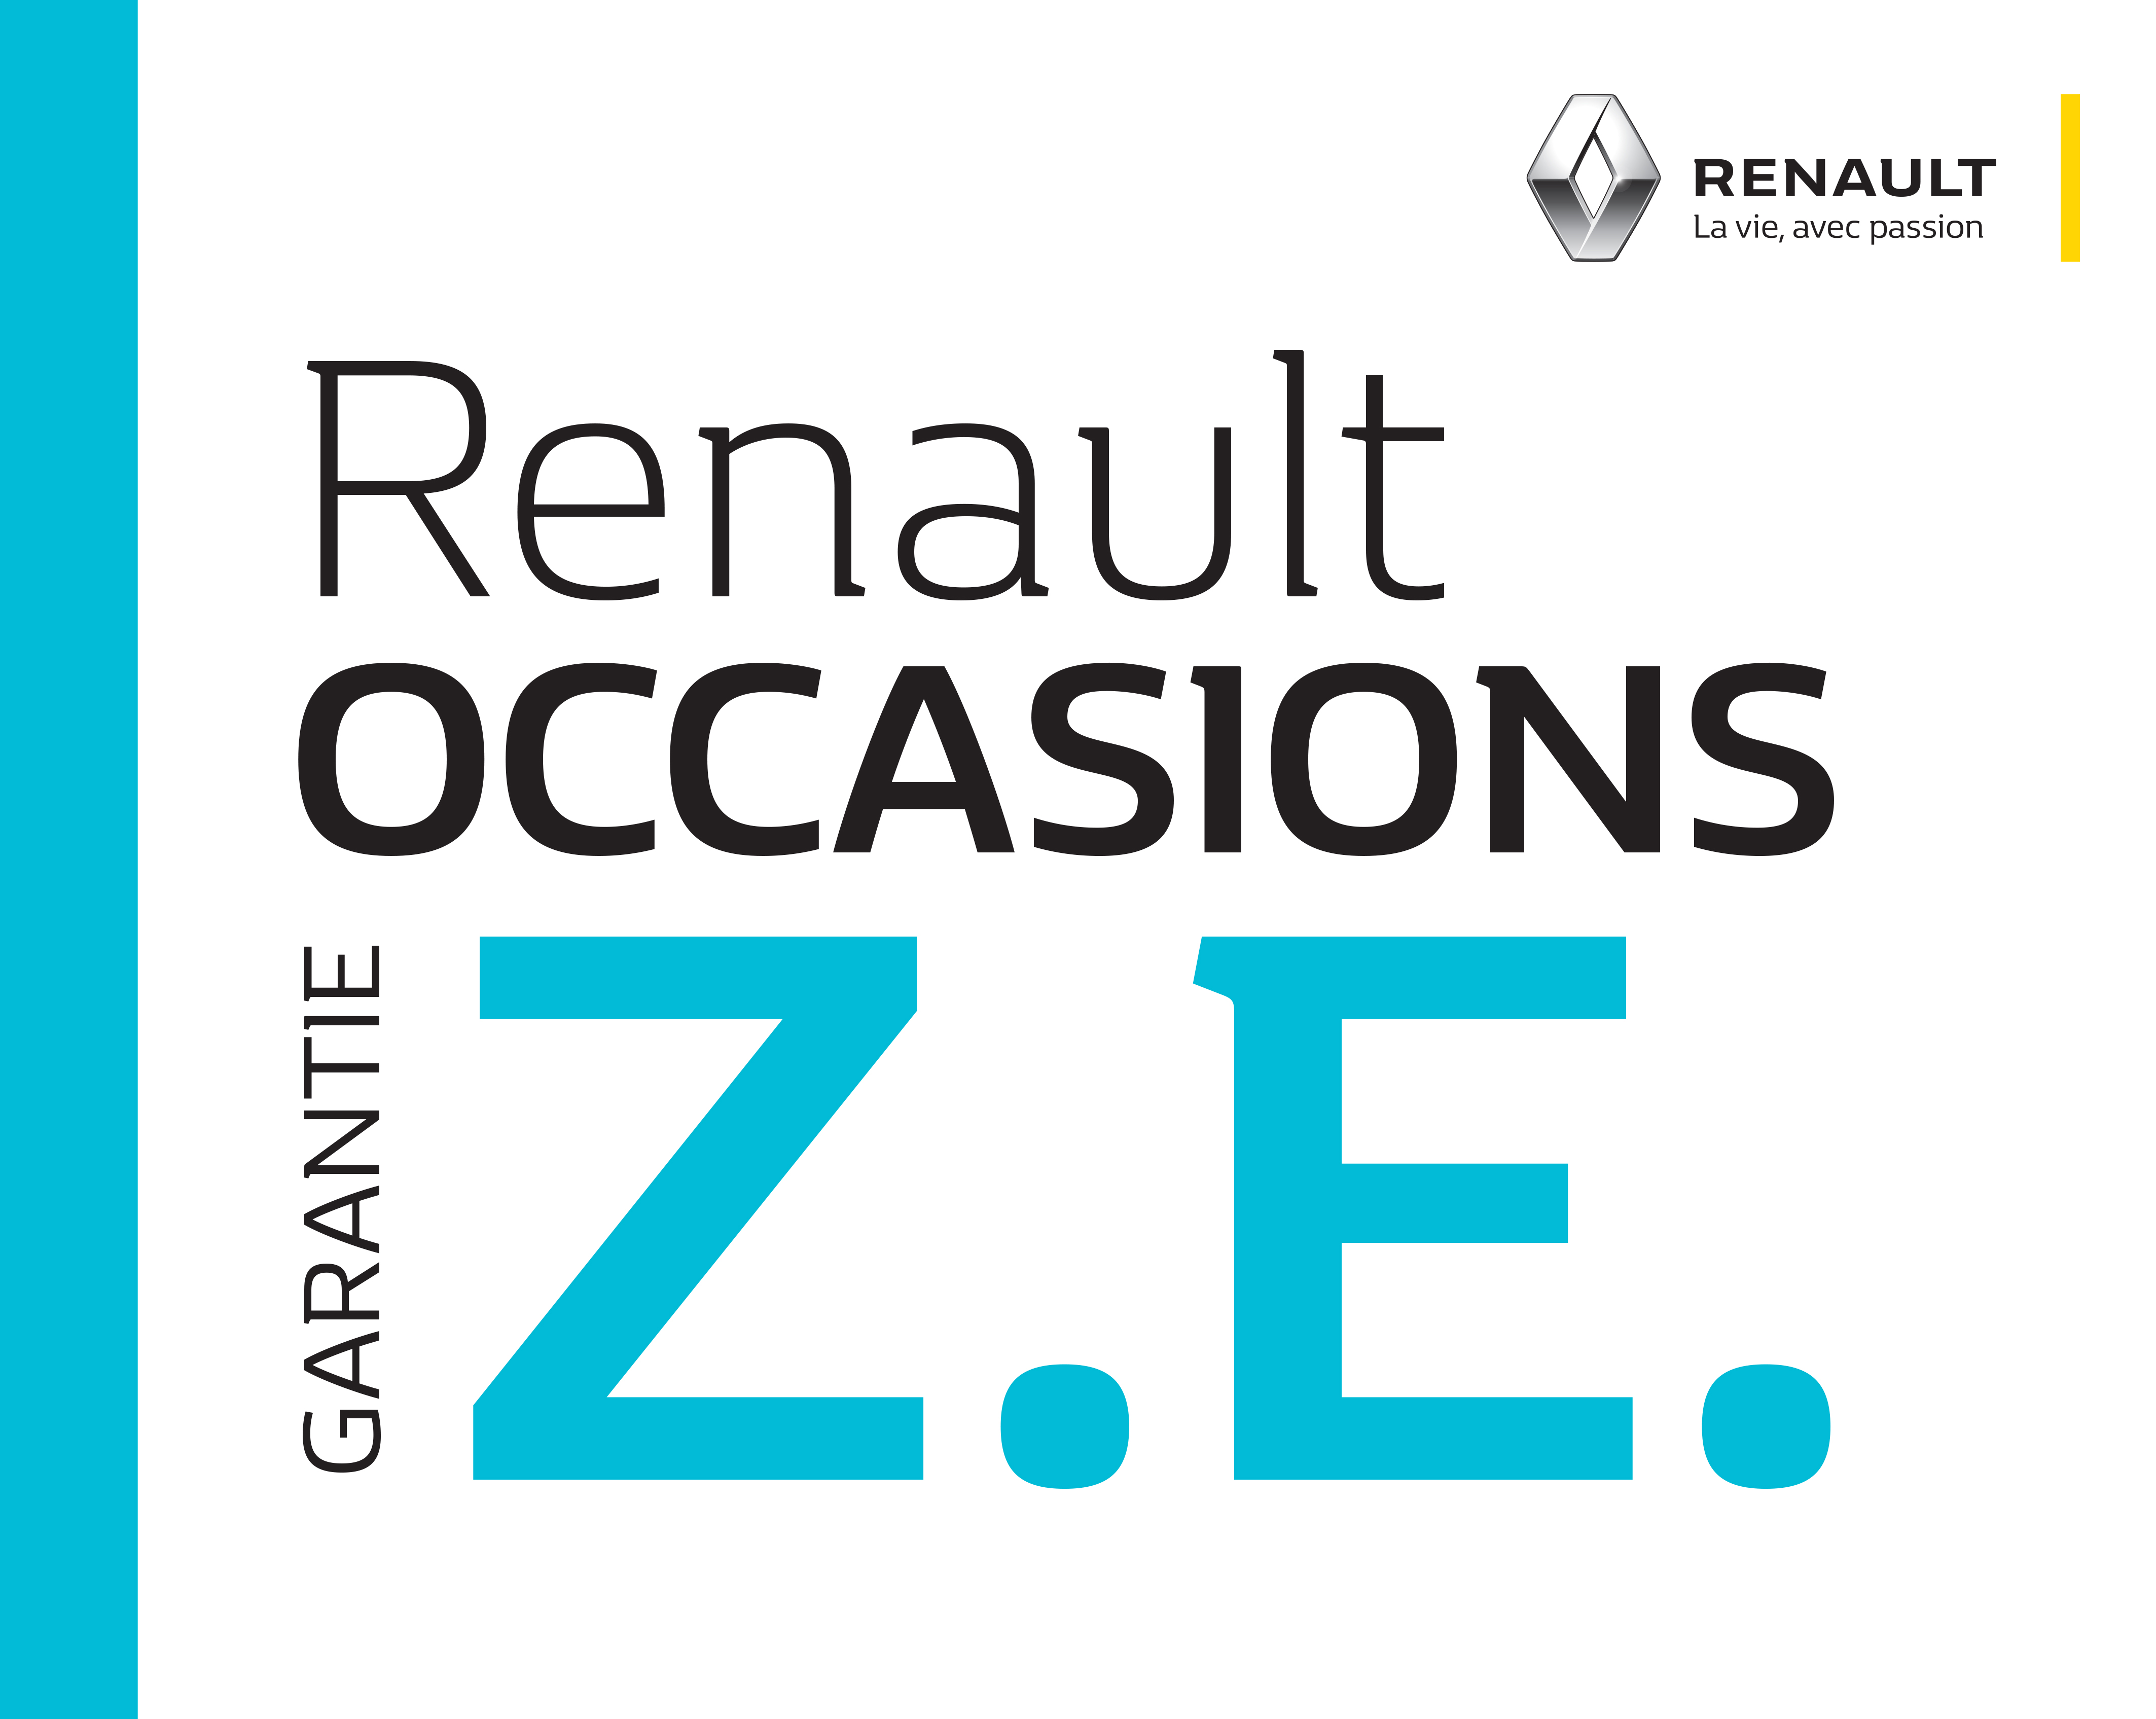 renault occasion herouville st clair renault caen. Black Bedroom Furniture Sets. Home Design Ideas